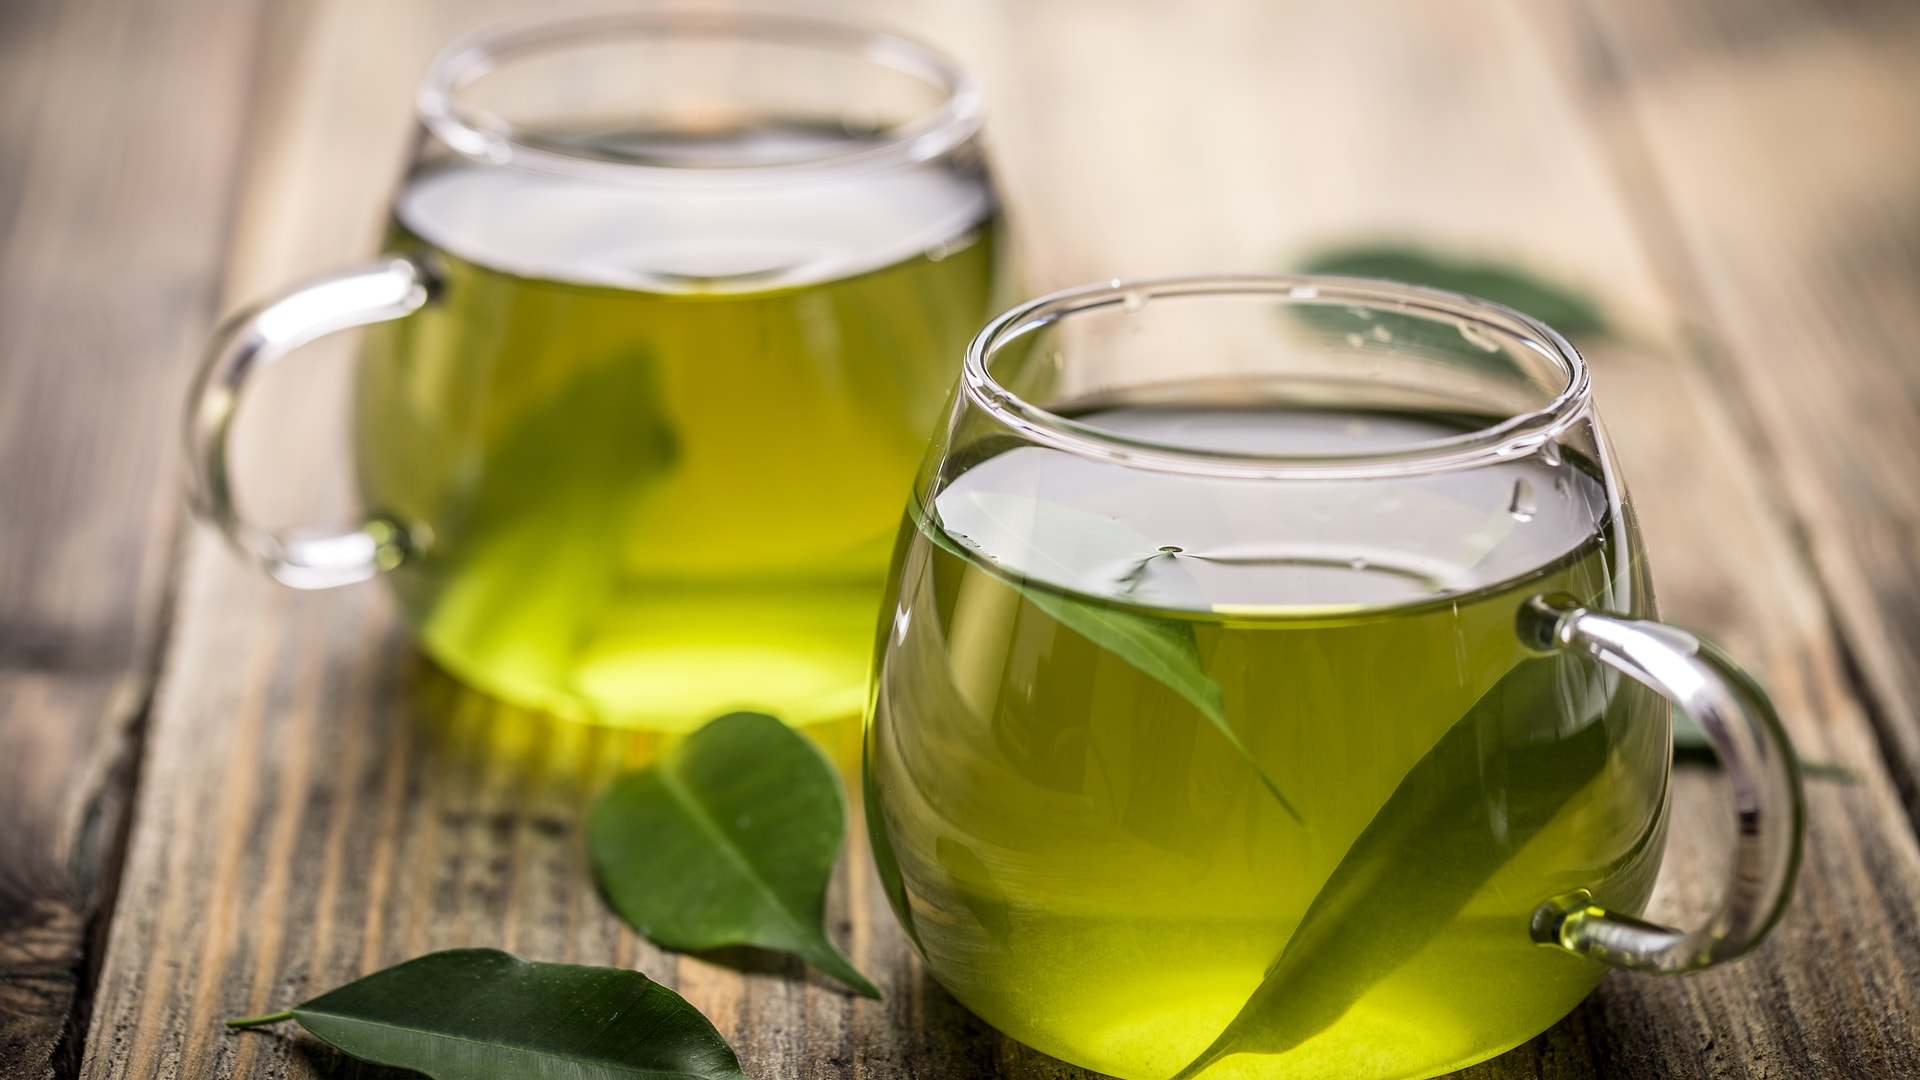 Green Tea May Help with Alzheimer's